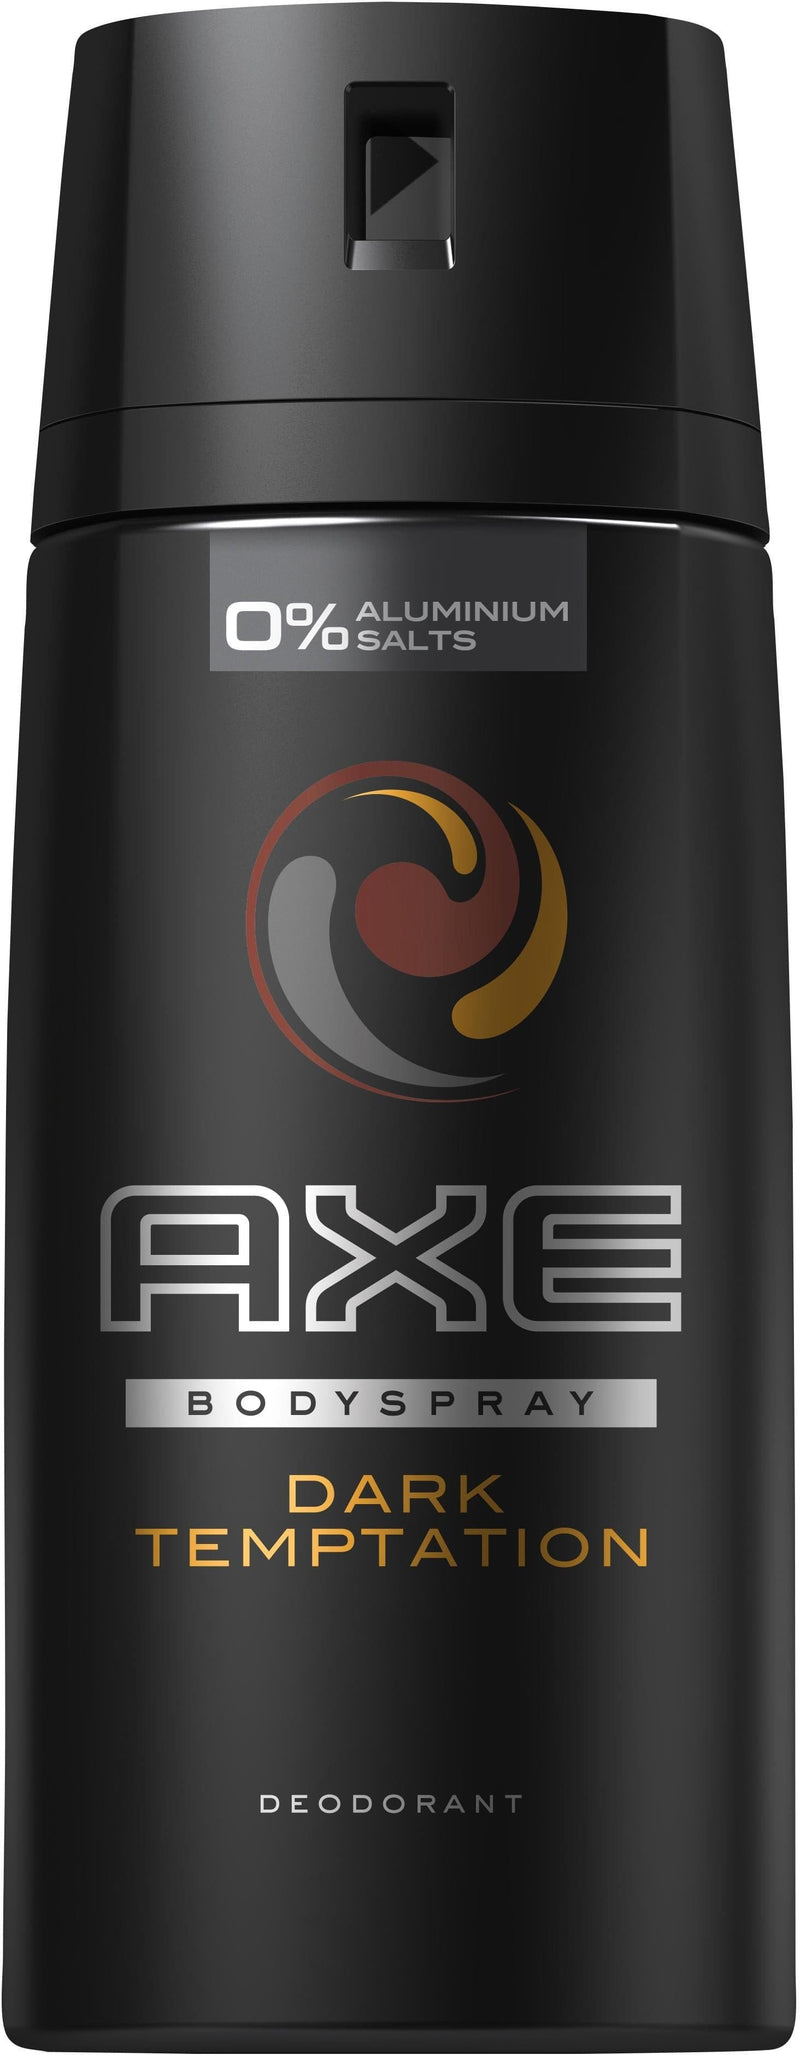 Déodorant Bodyspray Dark Temptation Axe 150ml